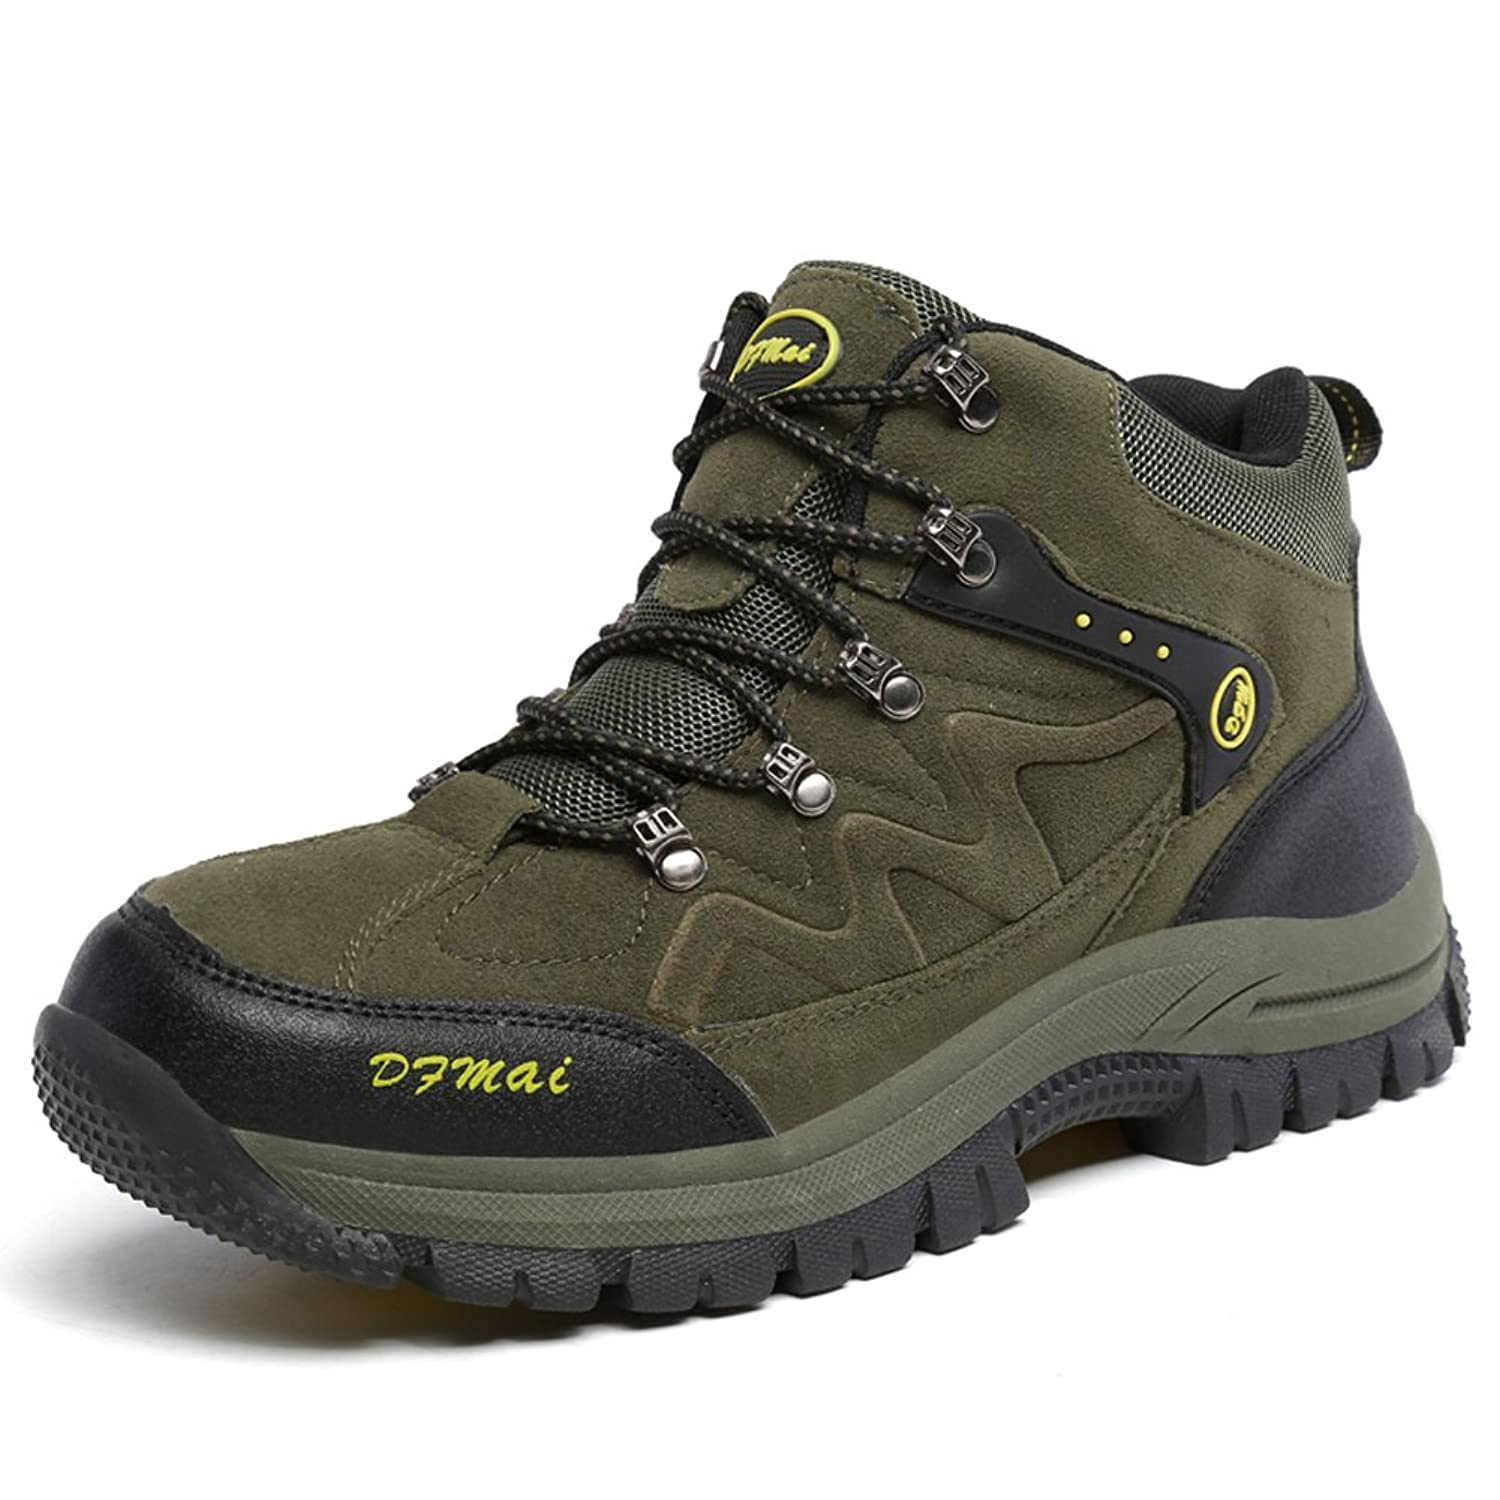 bba6dd9fe84 Men s Hiking Boots Wear-resistant Shock Absorption Rubber Sole Outdoor  Trekking Walking High Shoes hot